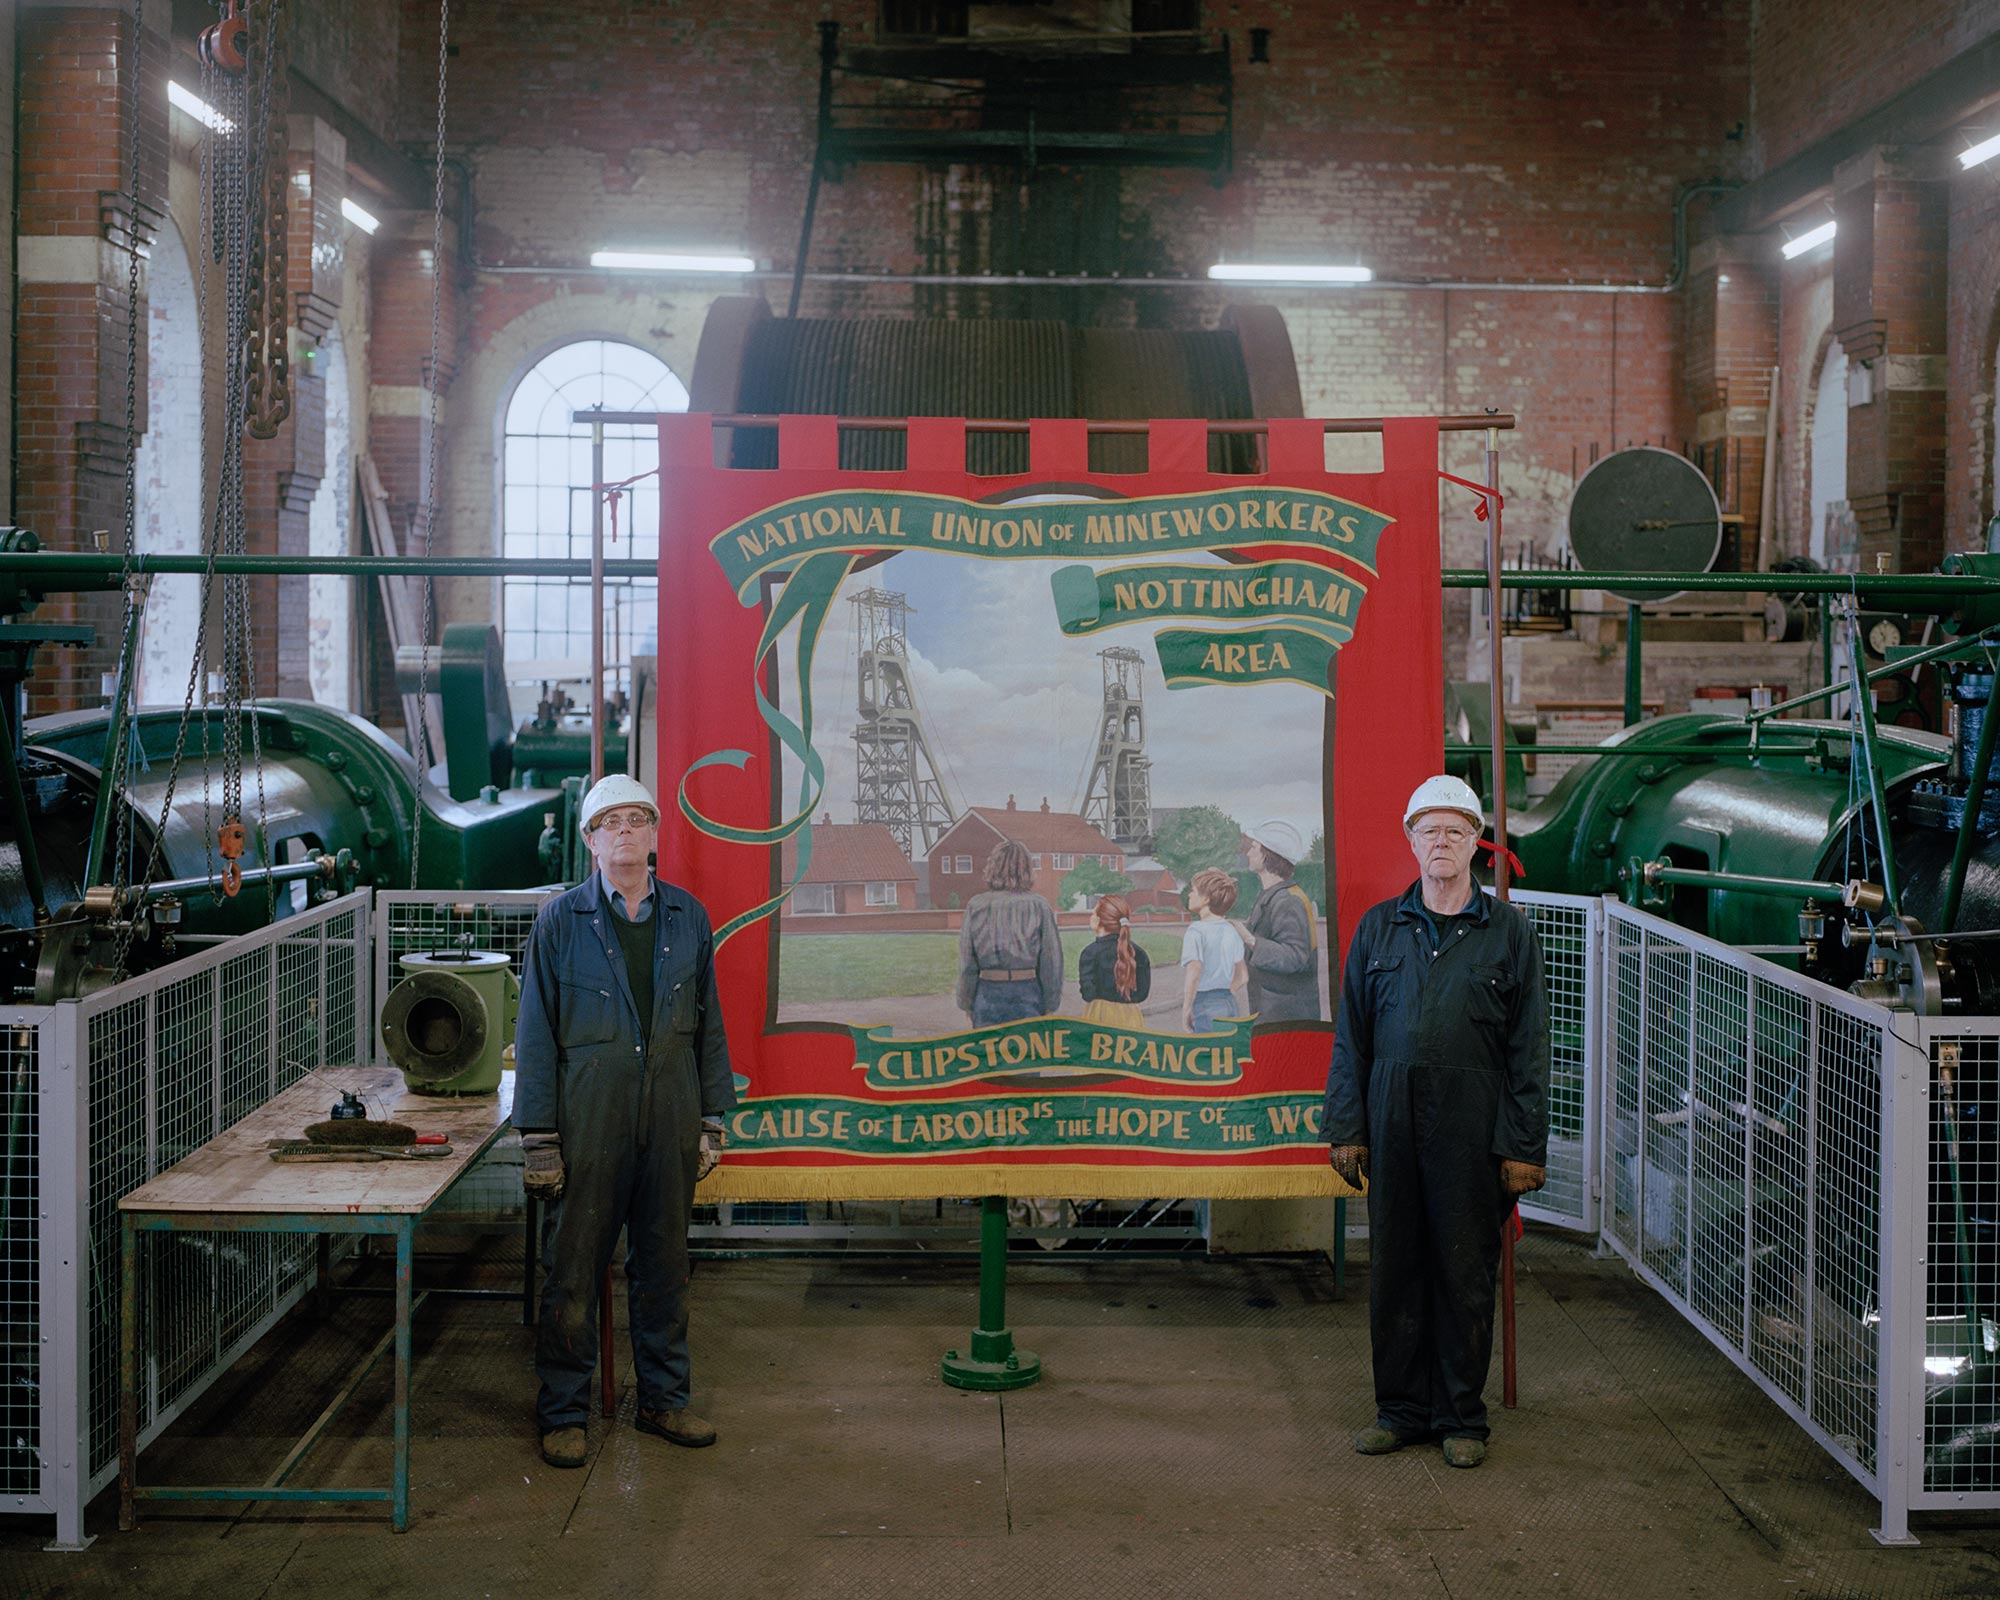 Volunteers at the restored Pleasley Colliery, posing with the National Union of Mineworkers Clipstone Branch banner.